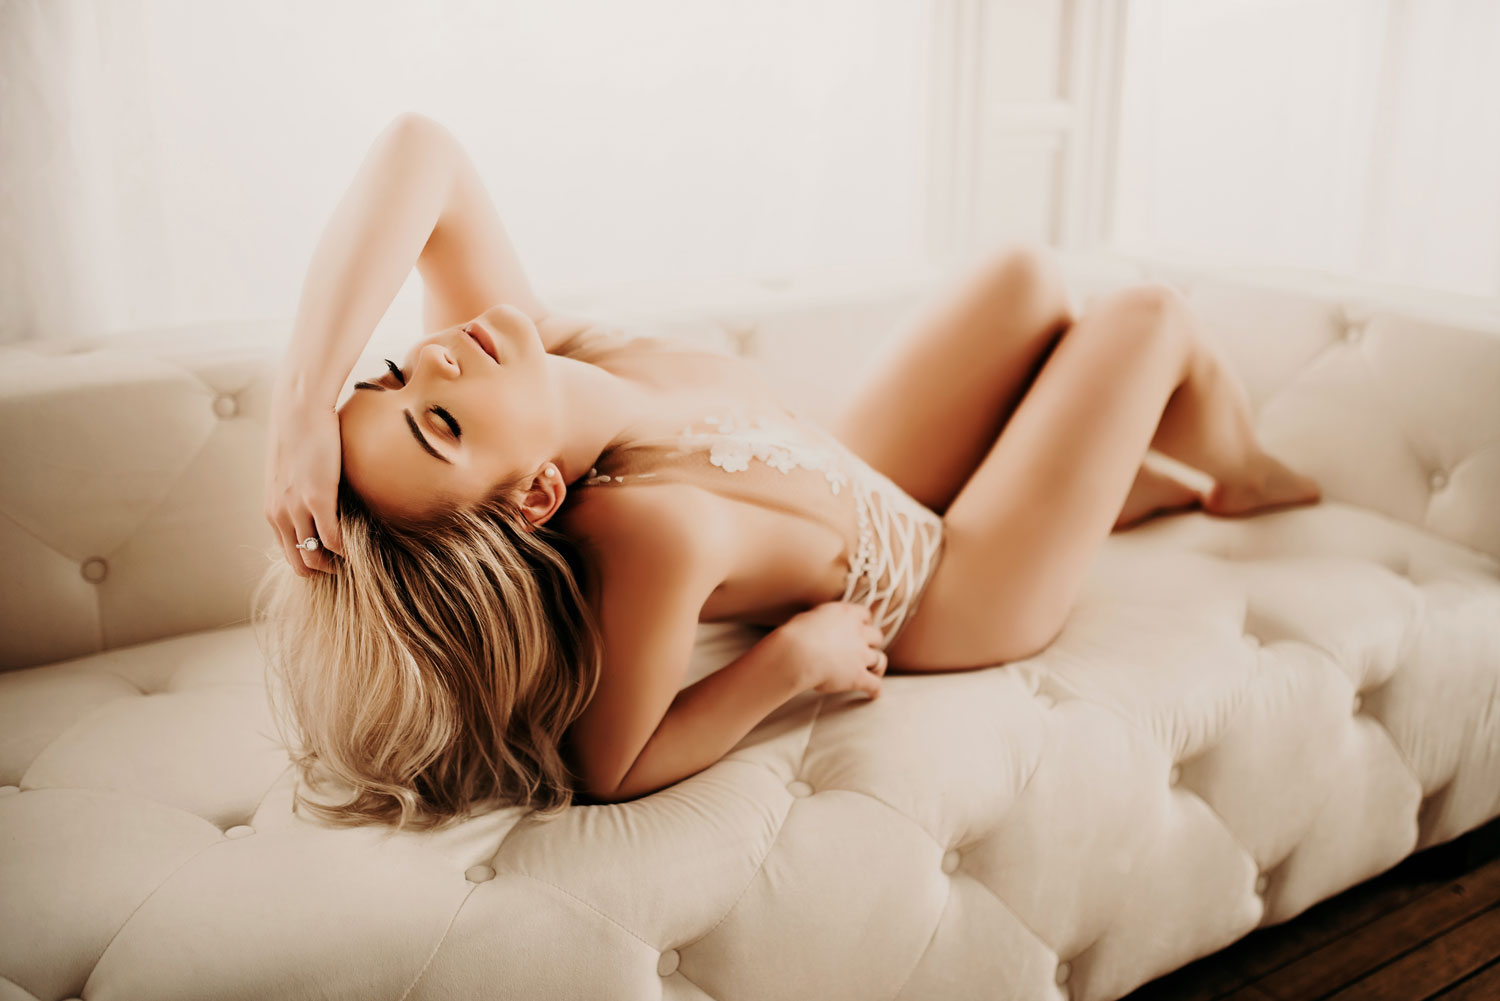 PhoebeBoudoir-(1-of-1)website.jpg